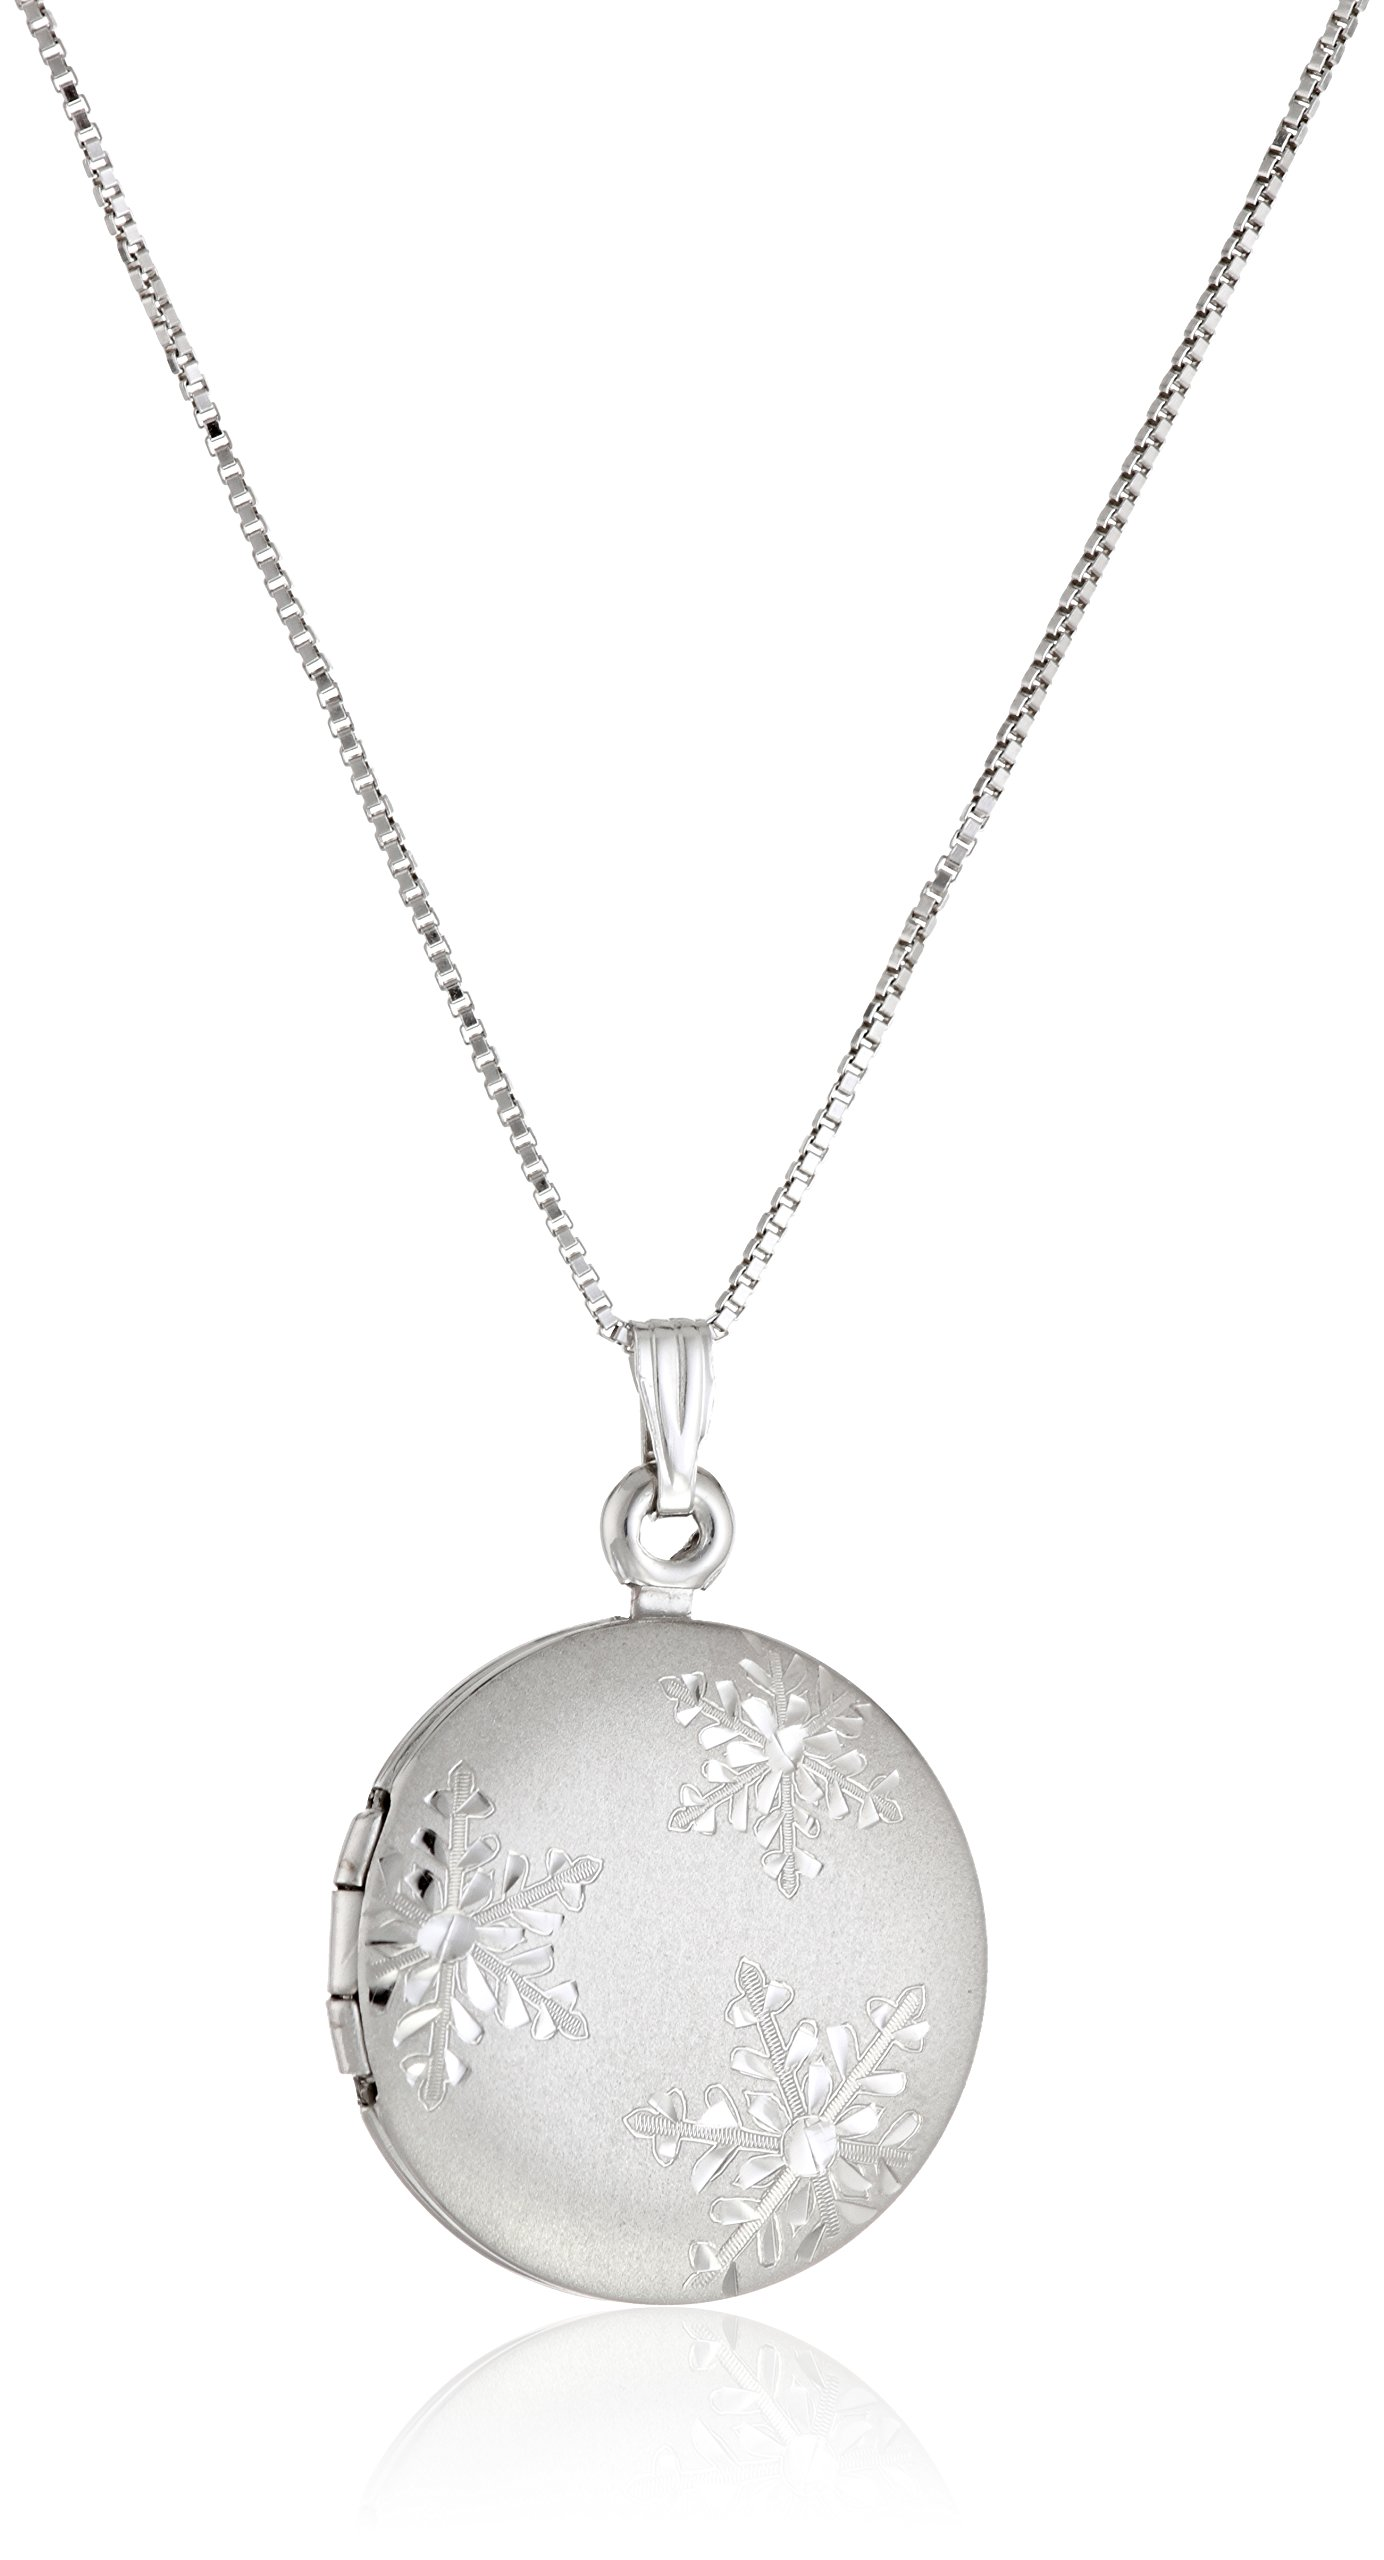 Sterling Silver Snowflake-Engraved Locket Necklace, 19''